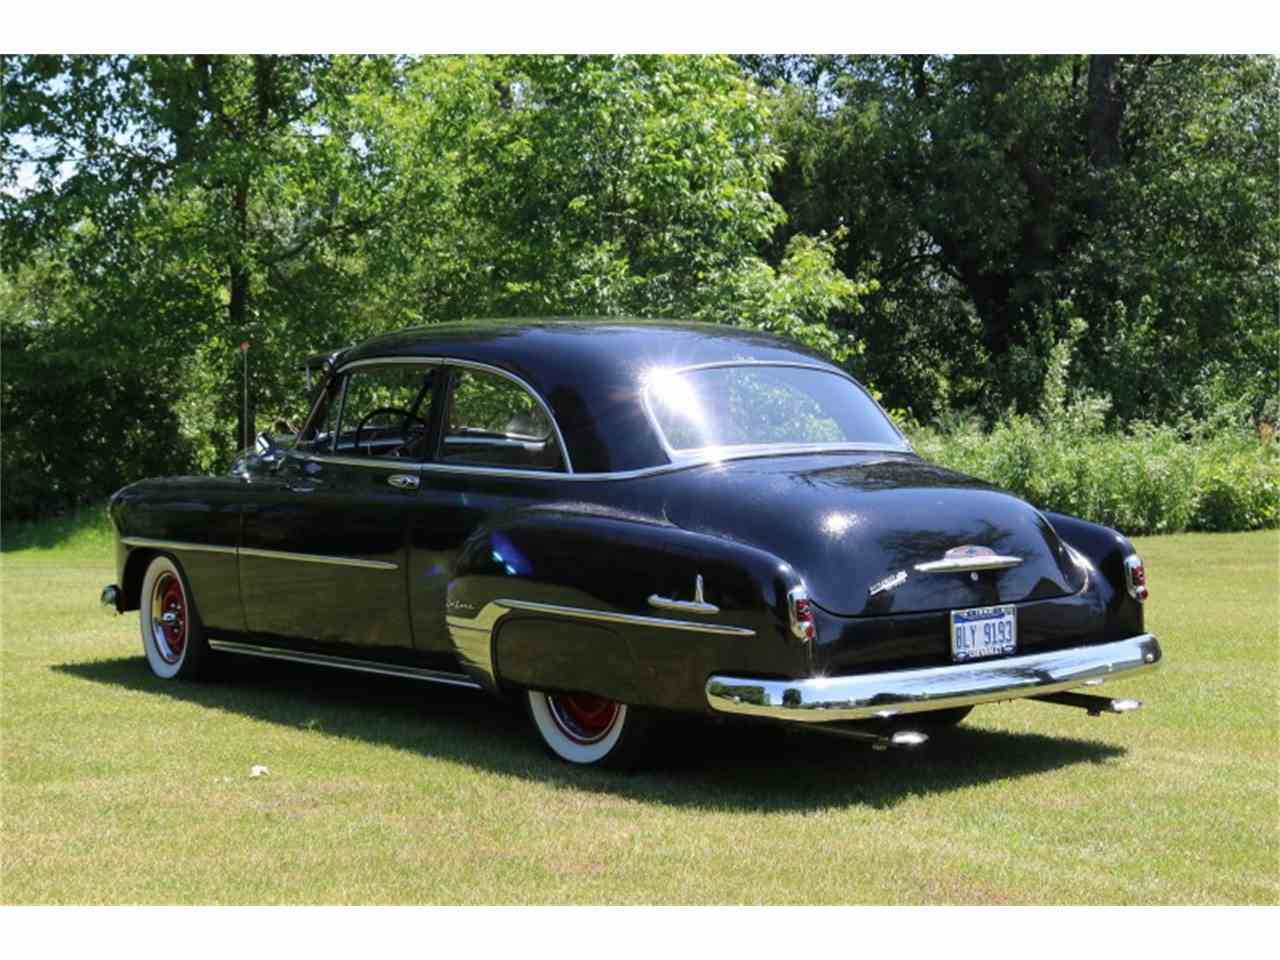 Large Picture of '52 Chevrolet Deluxe Business Coupe located in Ortonville Michigan Offered by Sleeman's Classic Cars - LAP4